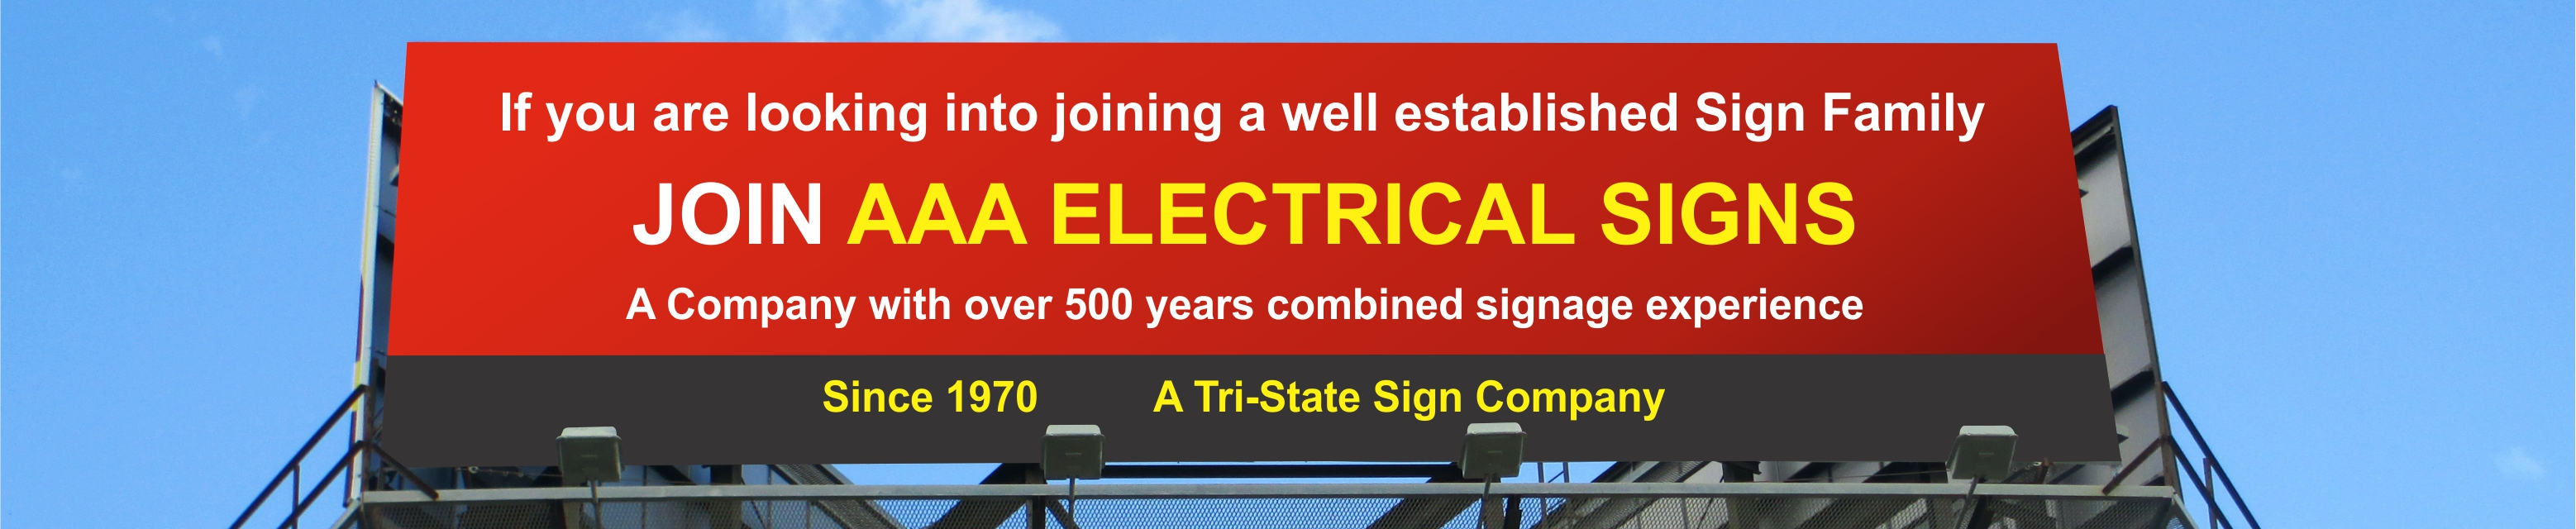 Join AAA Electrical Signs